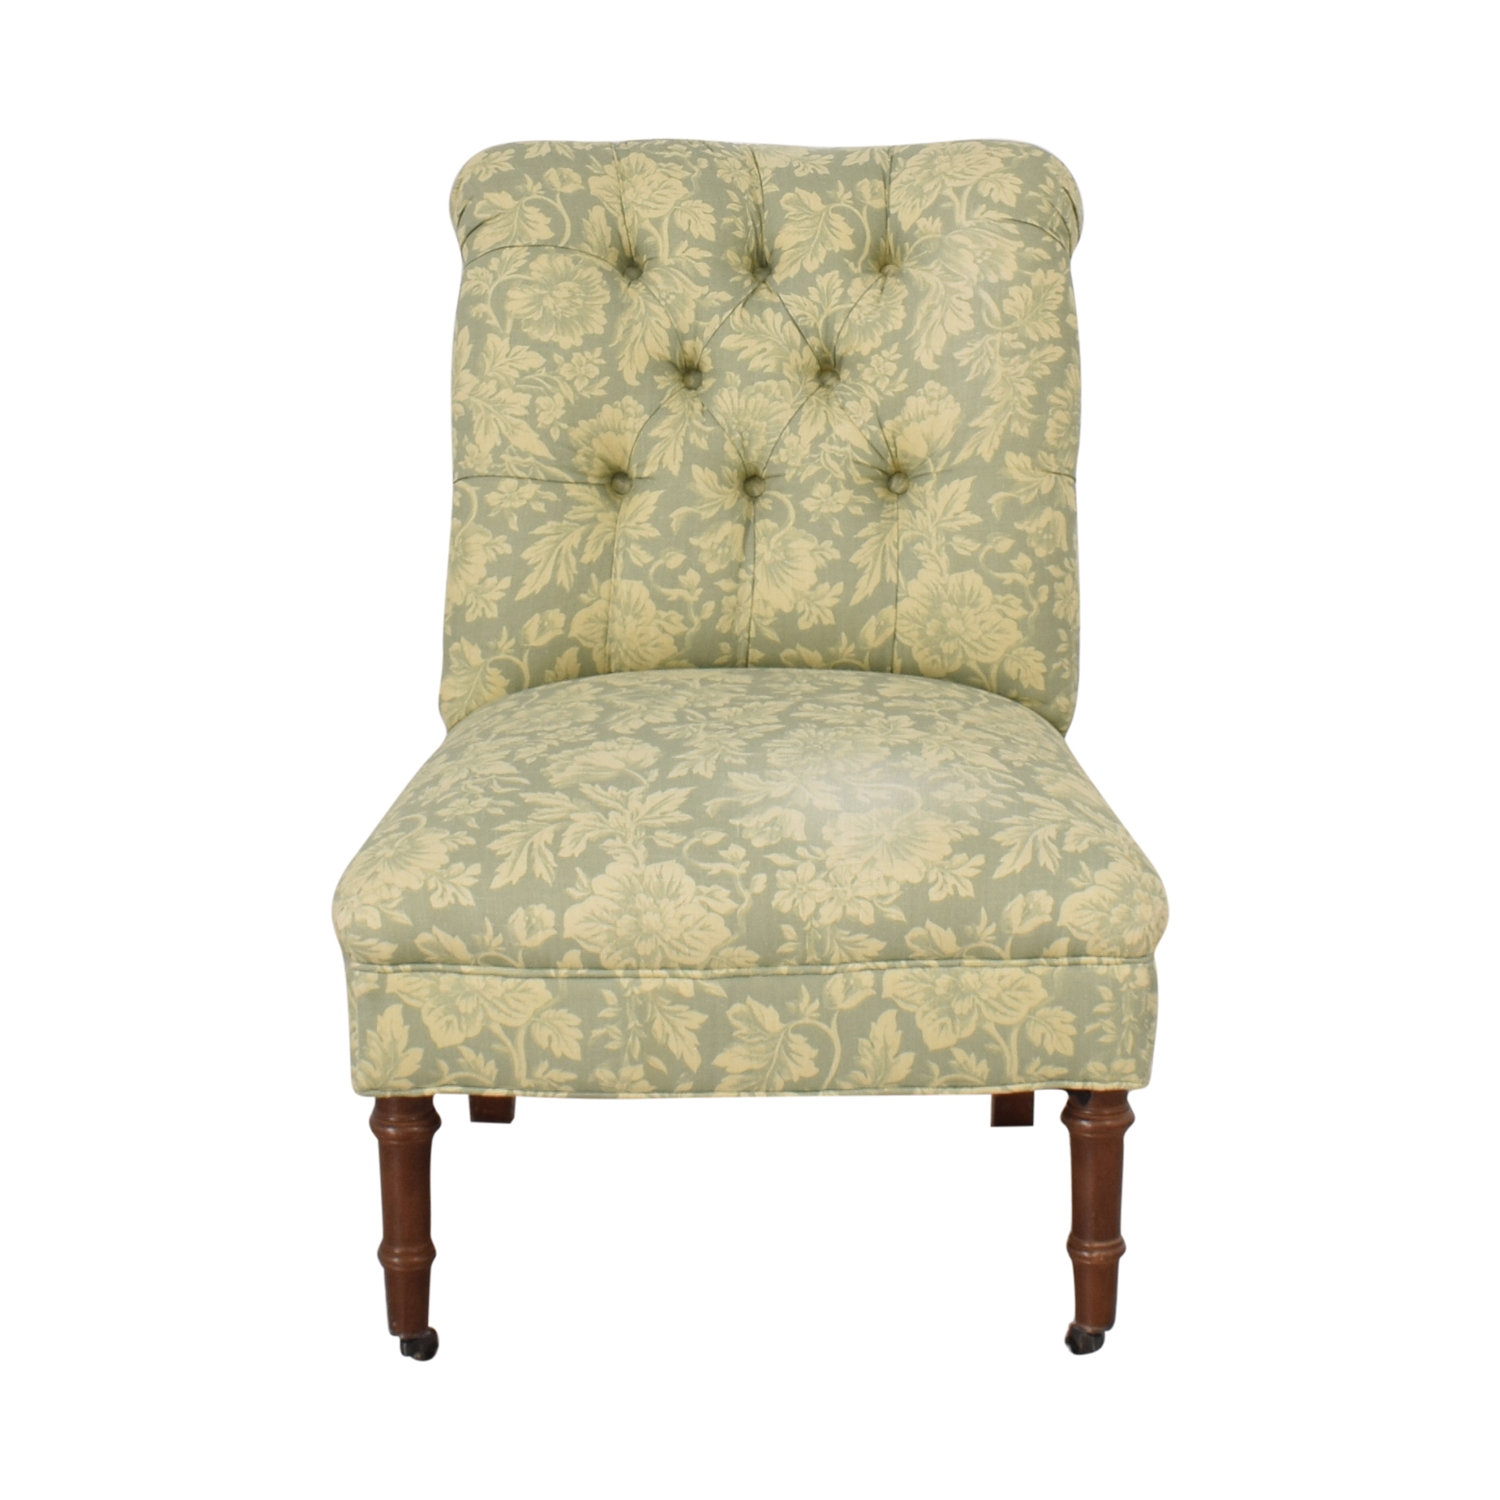 Lee Industries Armless Tufted Chair sale